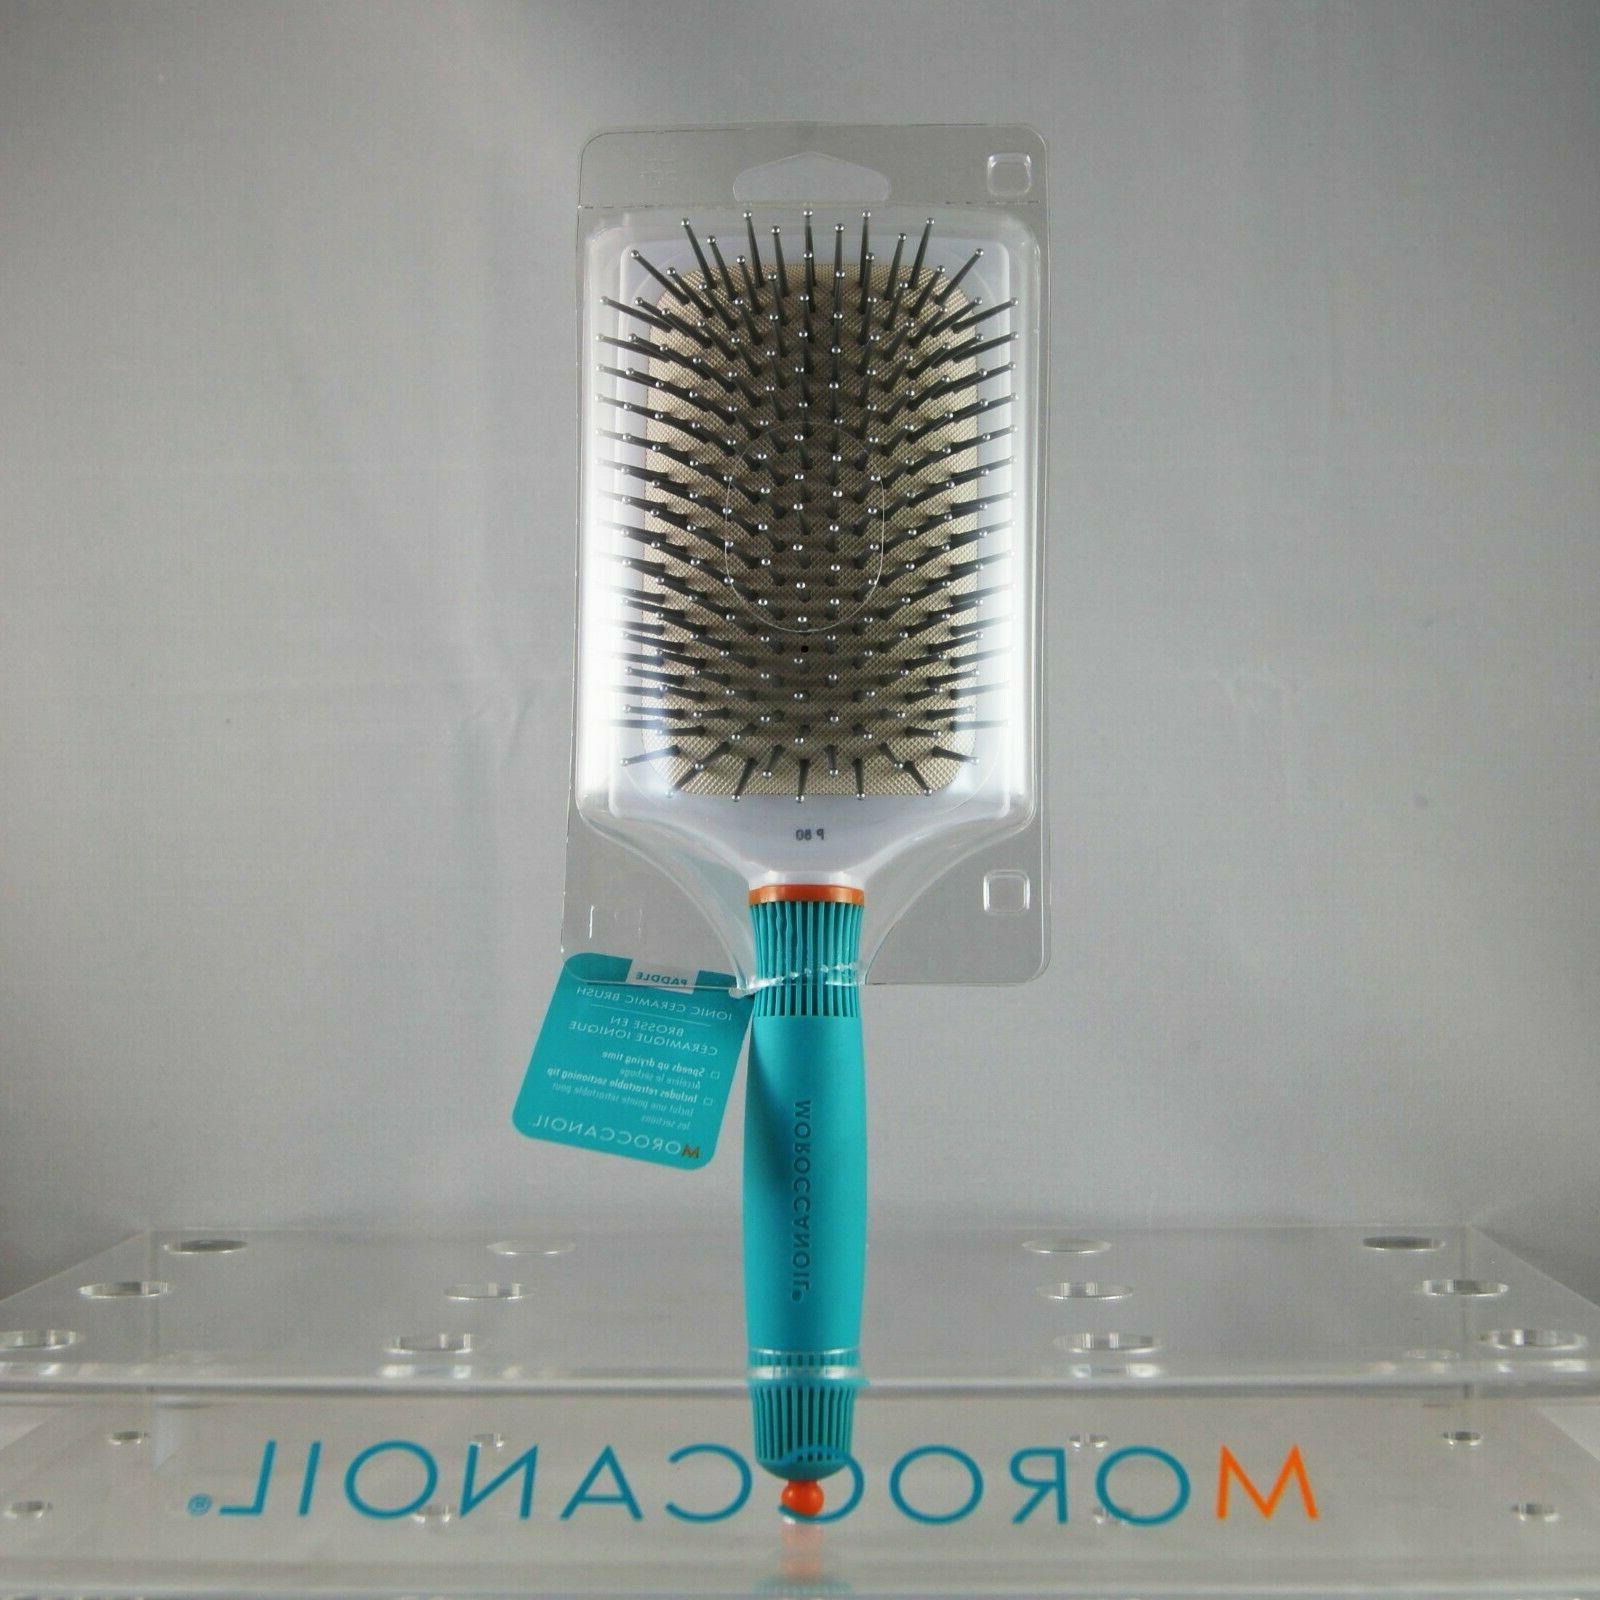 Moroccanoil Ionic Ceramic Thermal Paddle Brush P80 Brand New